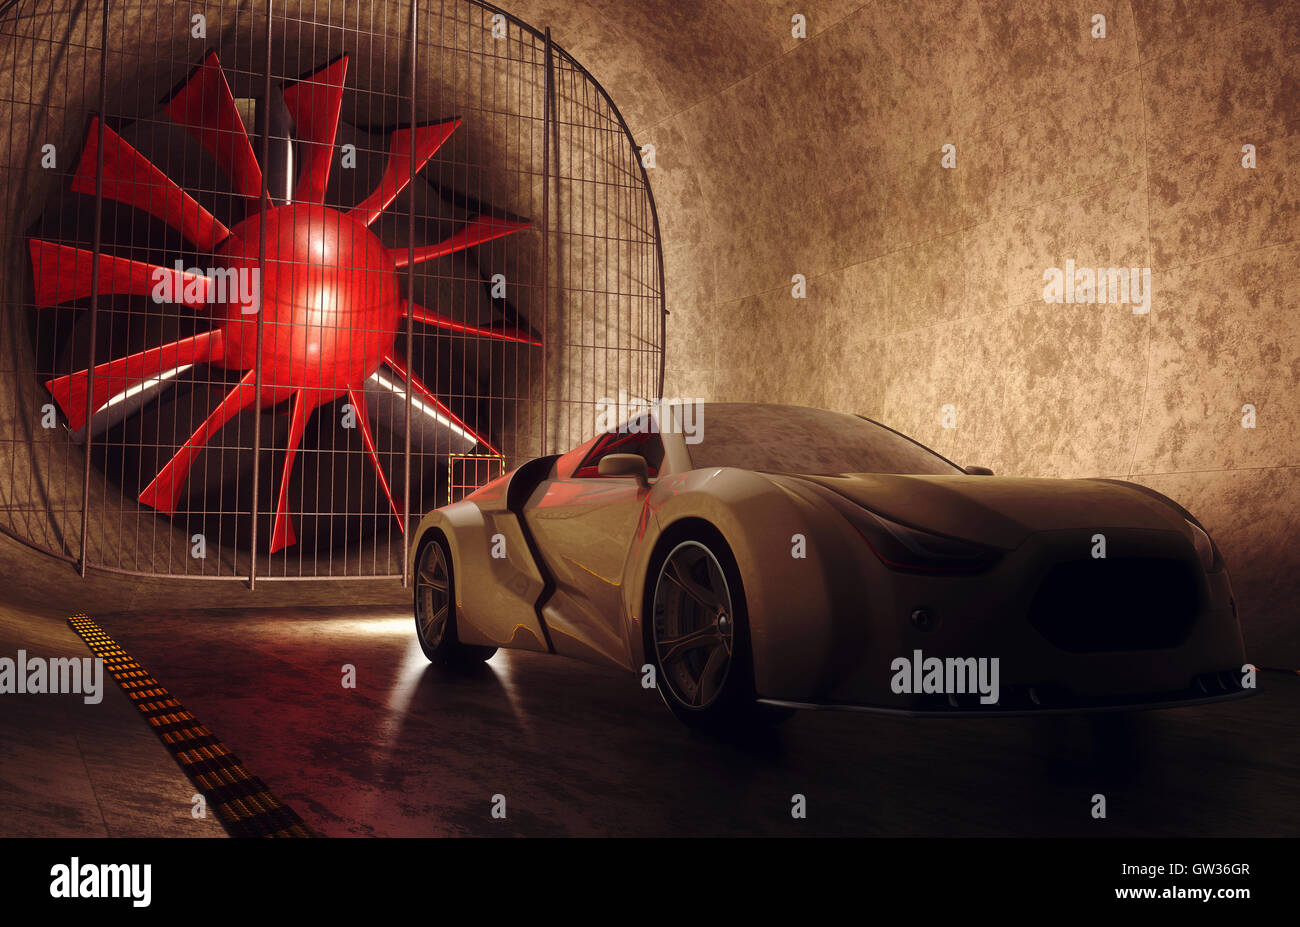 Sports car in wind tunnel, illustration. - Stock Image